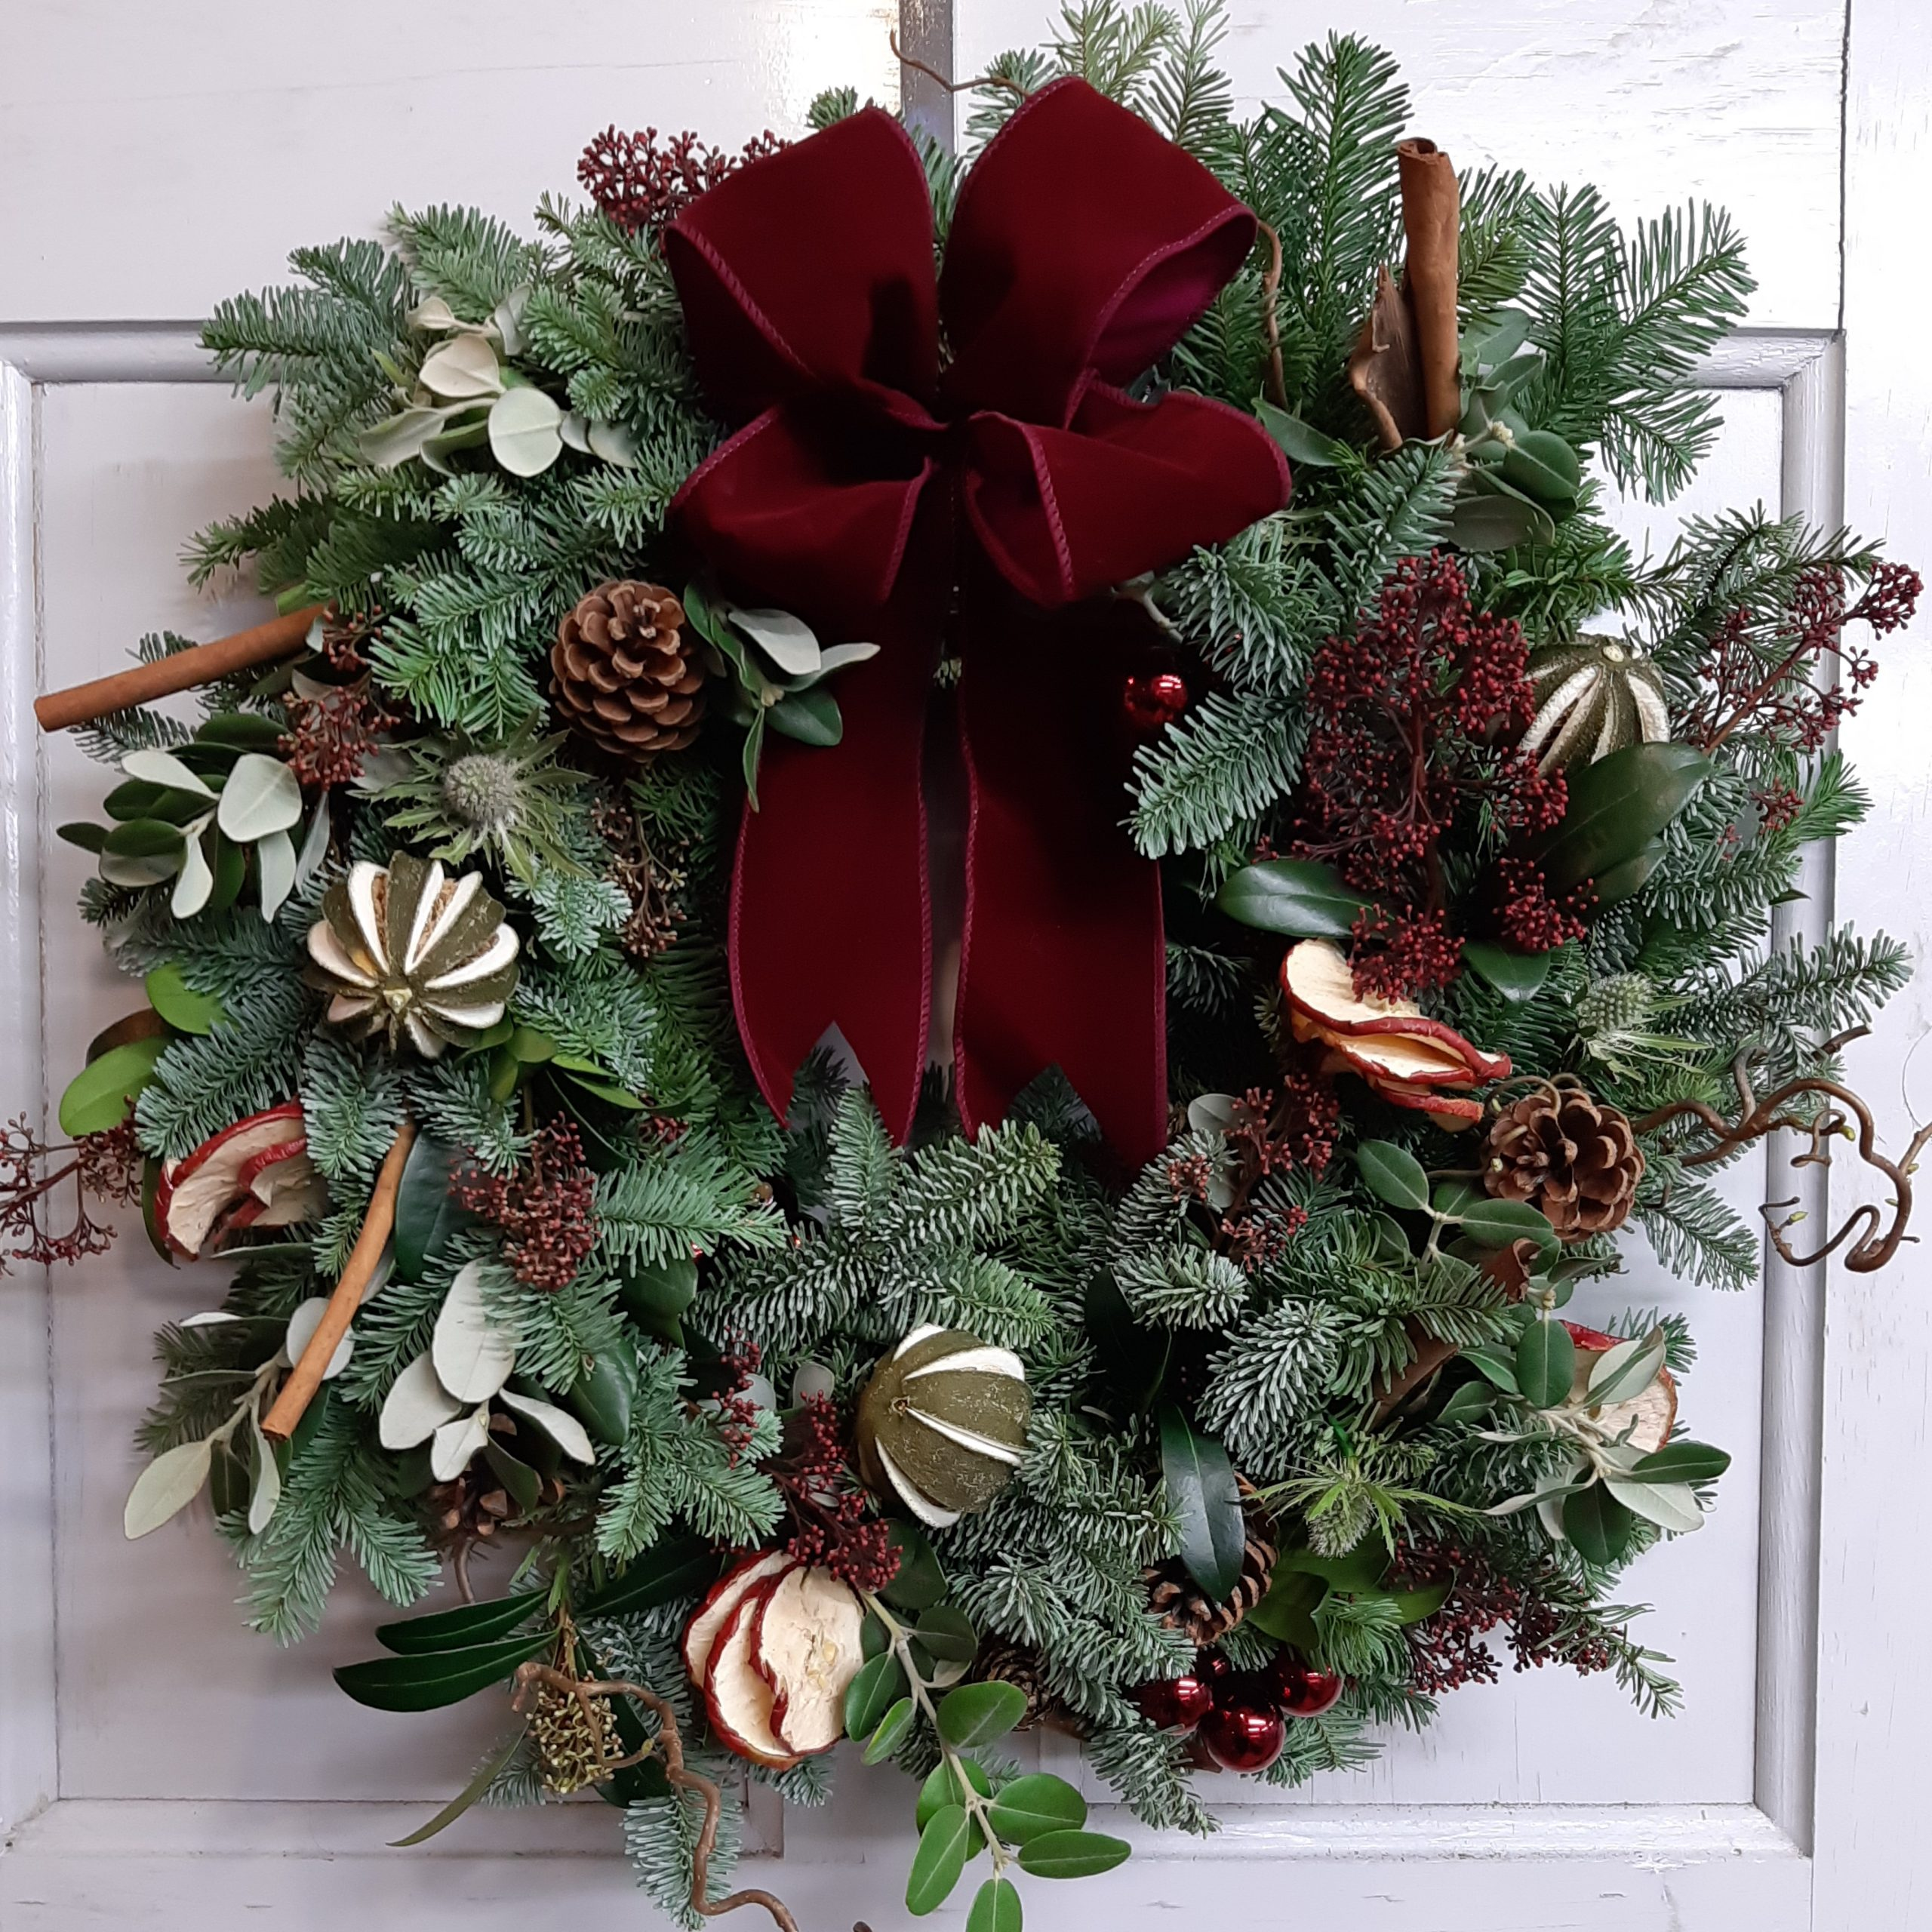 Christmas Wreath Making At Sonning Flowers Covid Safe Sonning Flowers